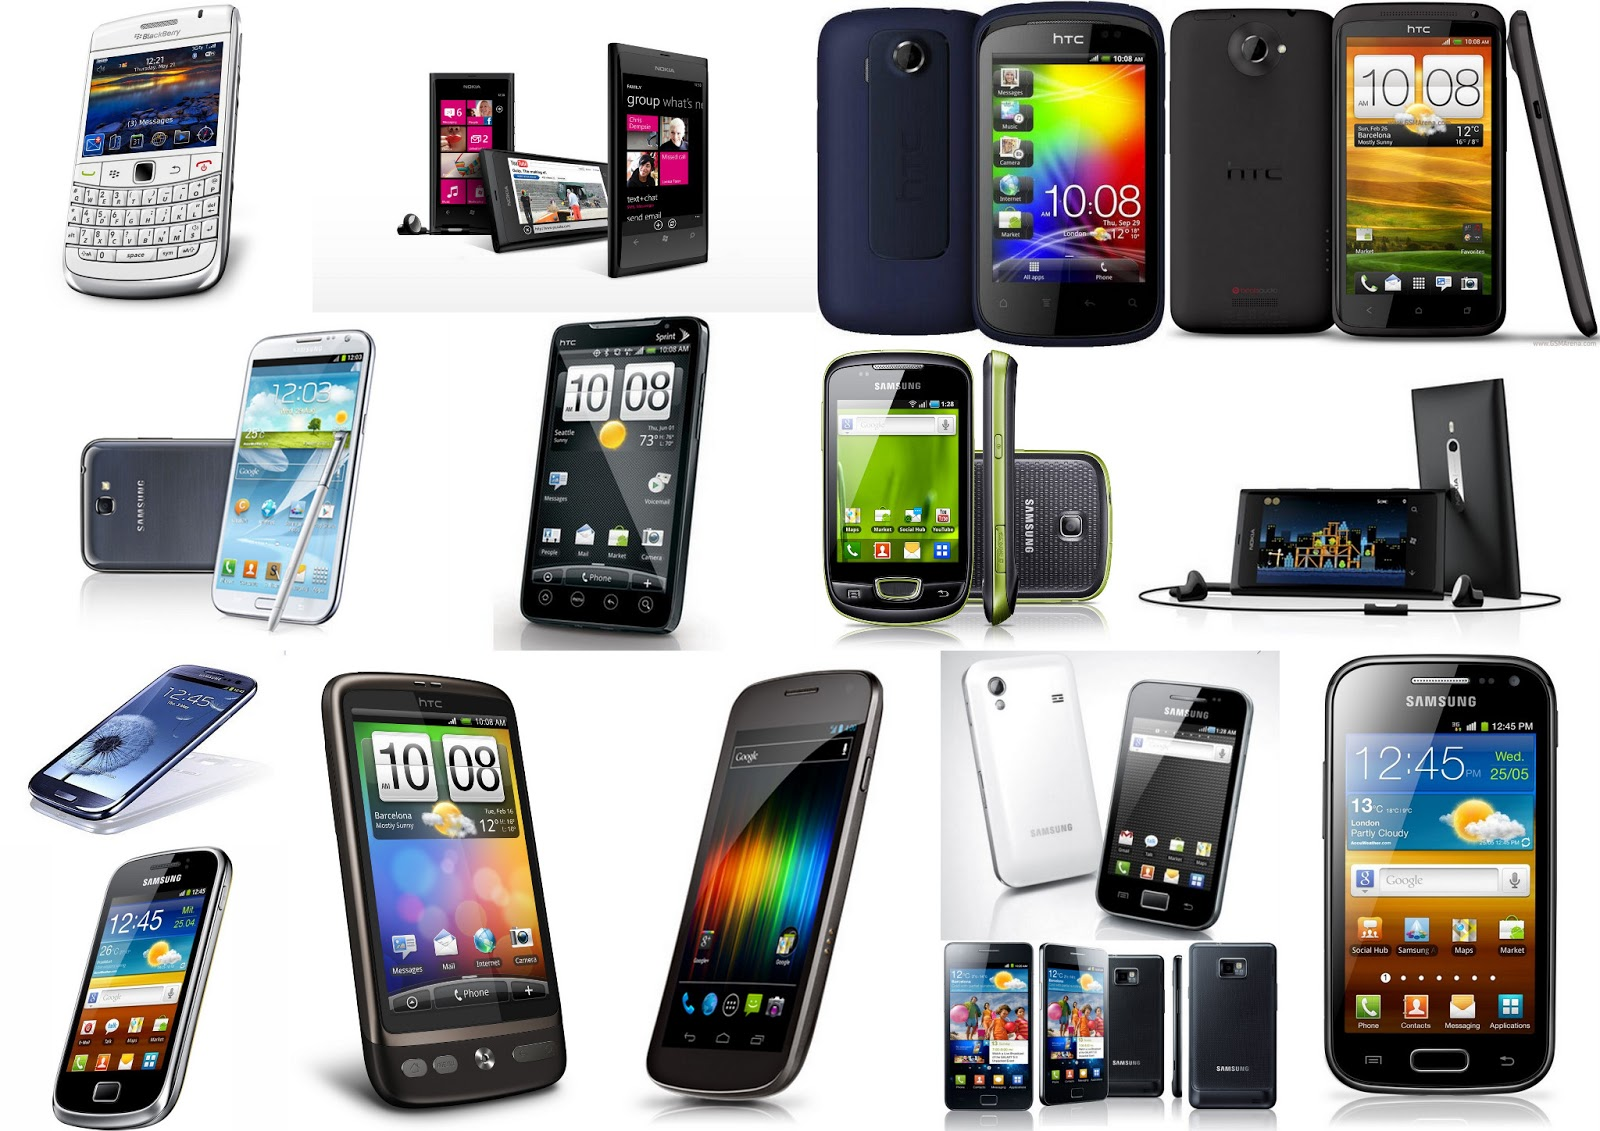 Phone S On The Mobile Imagine Advantages And Disadvantages Of Mobile Phones